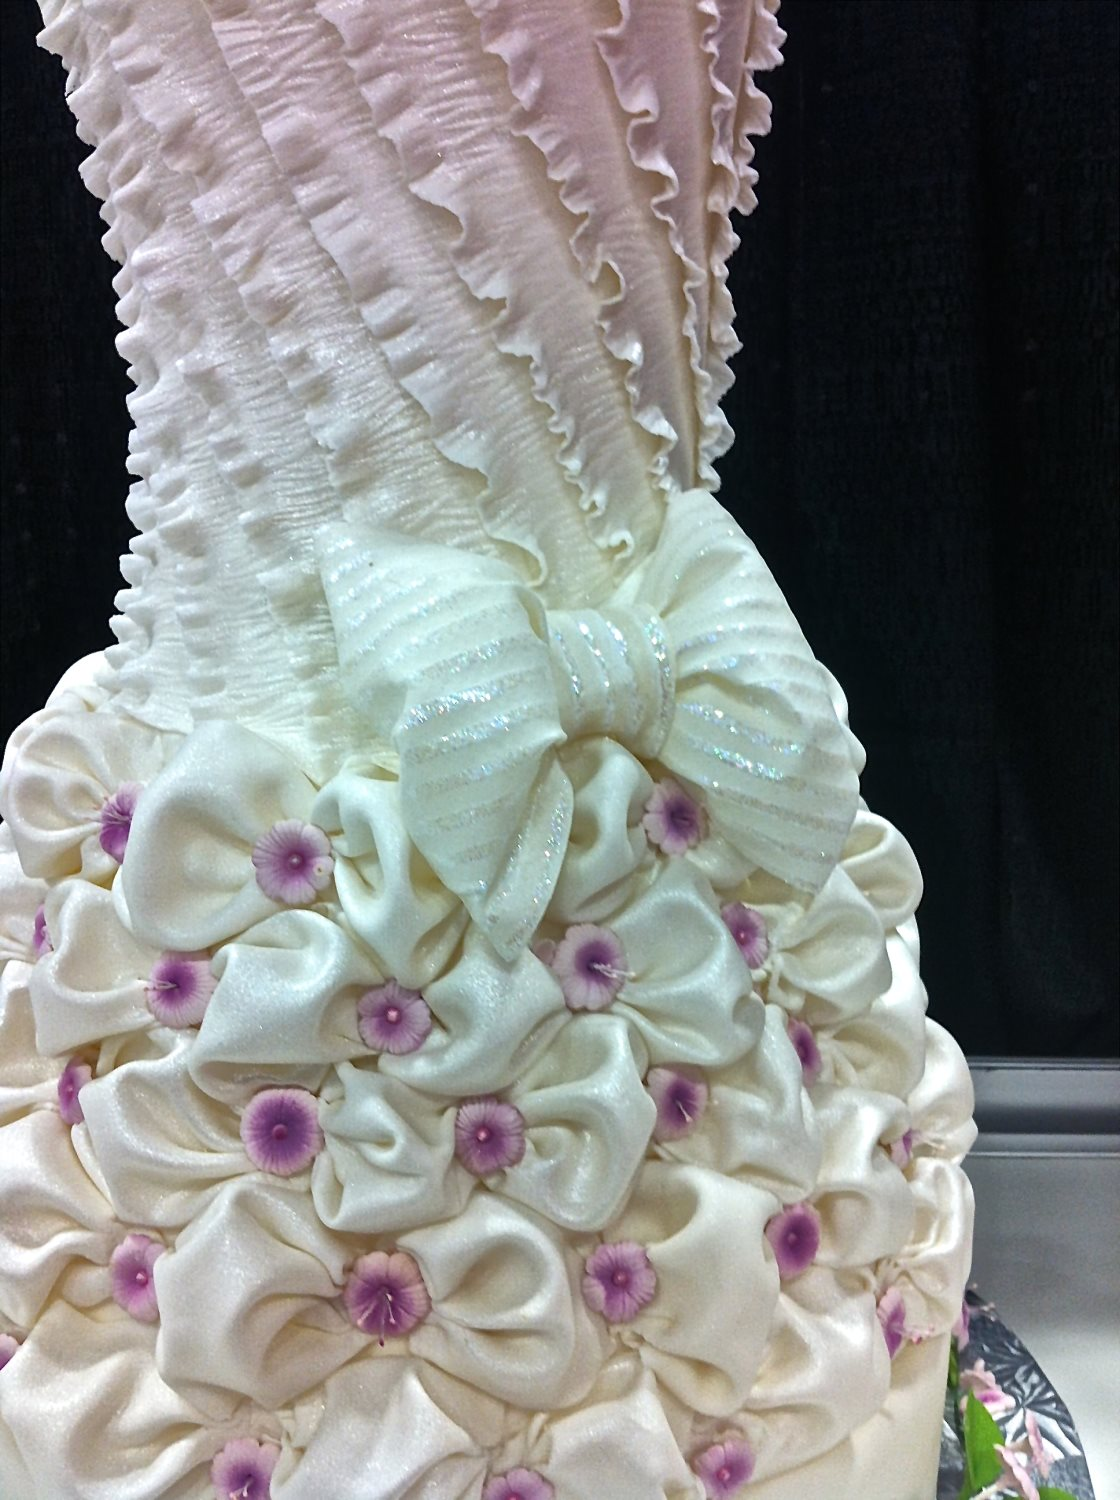 Traditional Cakes Gallery - Sugar Arts Institute: Cake Decorating ...